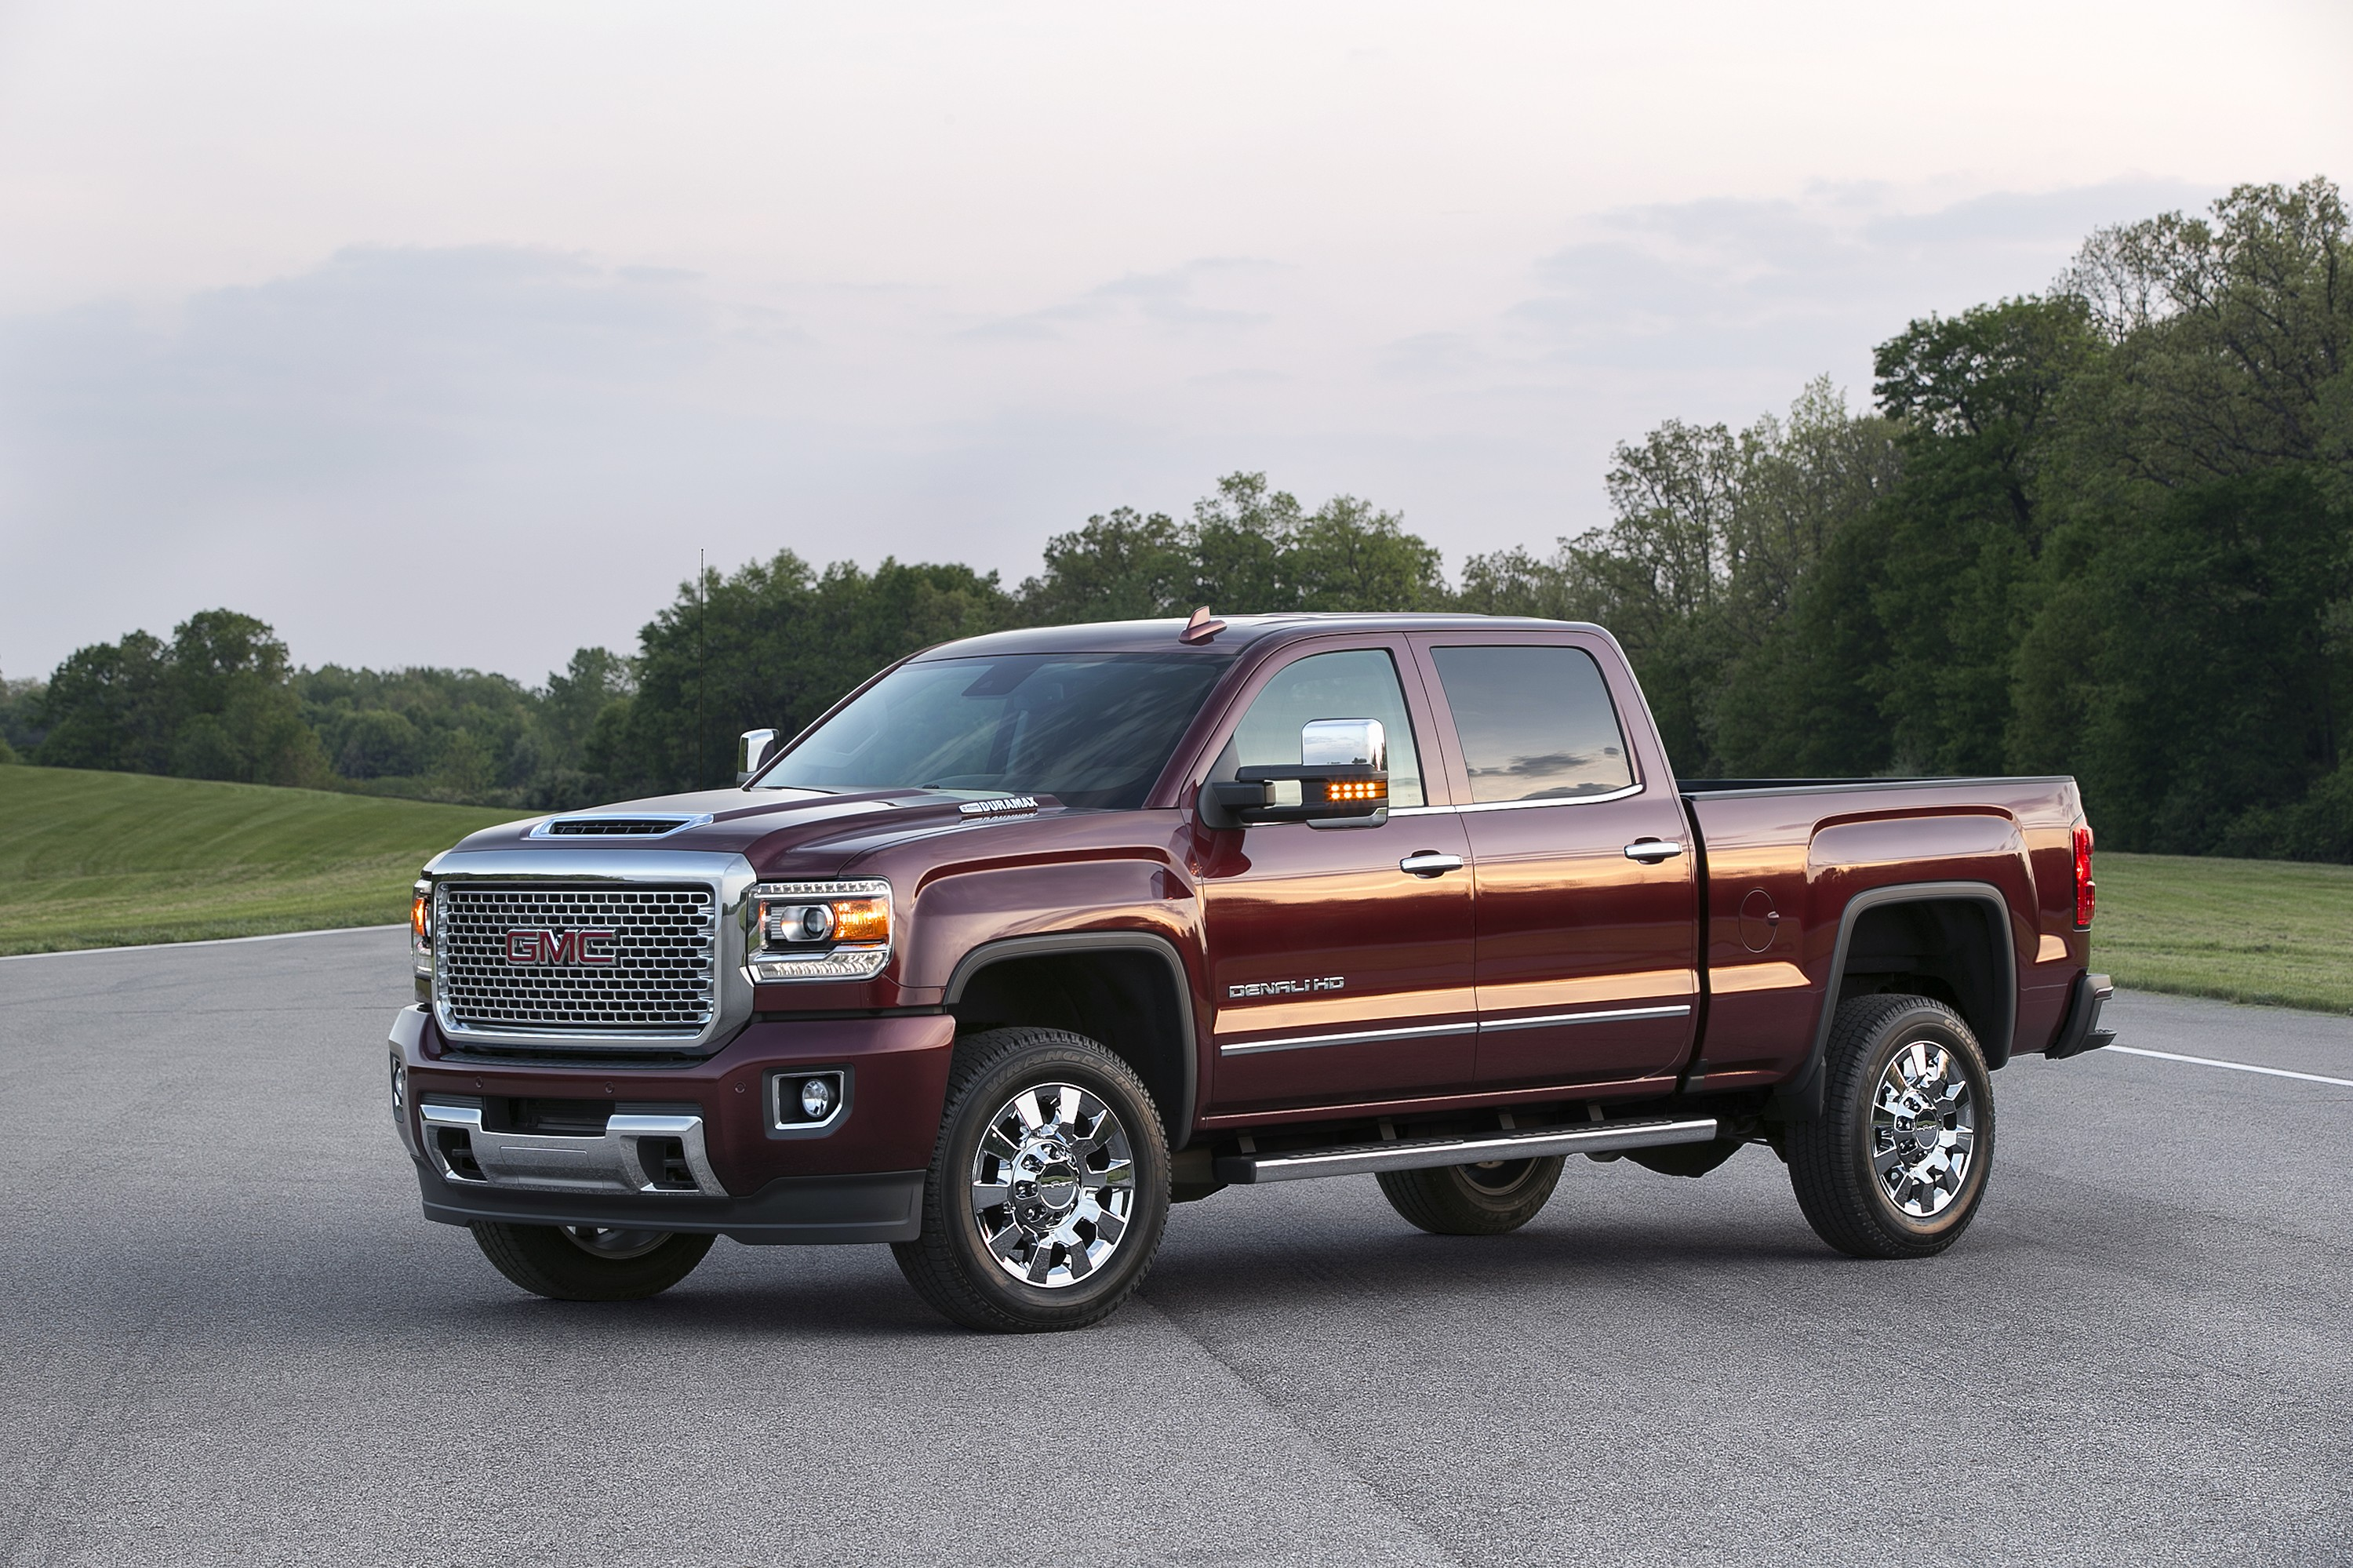 2017 gmc sierra denali 2500 hd with 6 6 duramax diesel v8